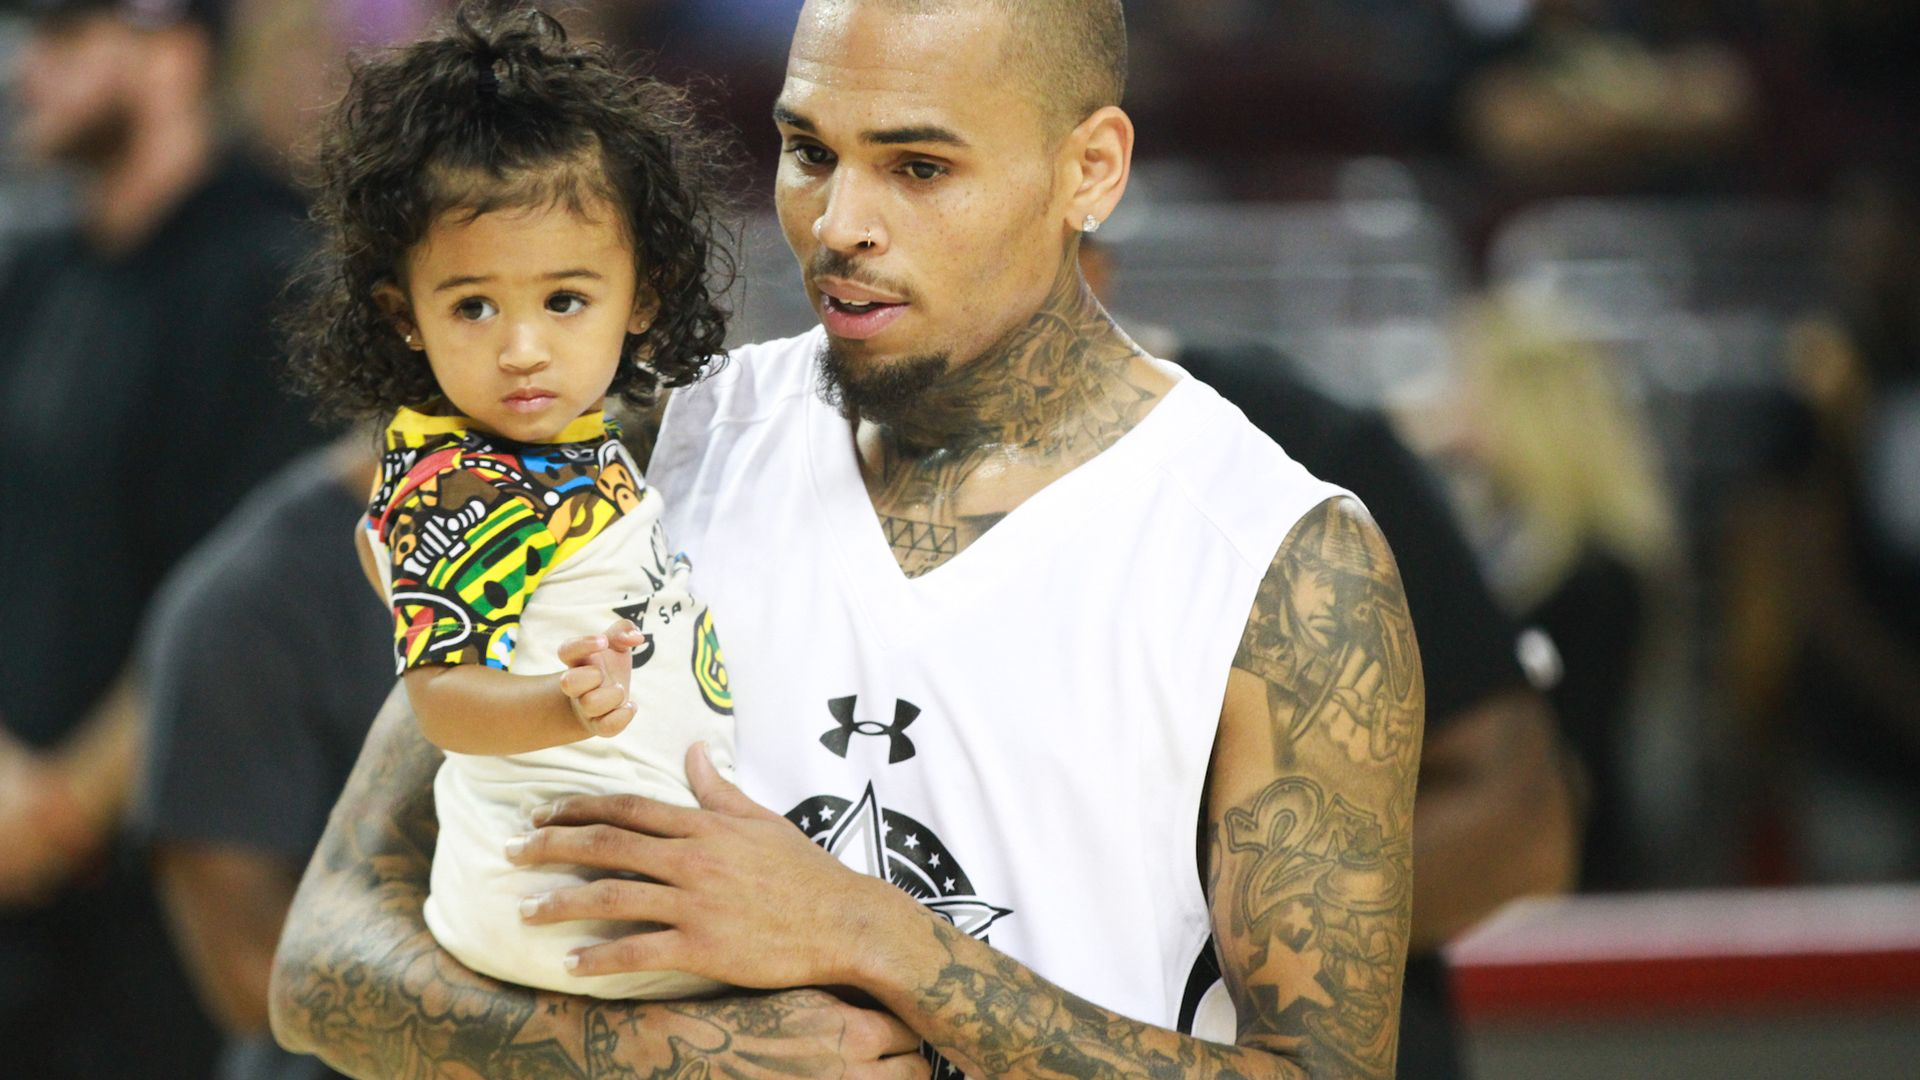 chris-brown-is-reportedly-learning-to-be-a-better-person-thanks-to-his-daughter-royalty